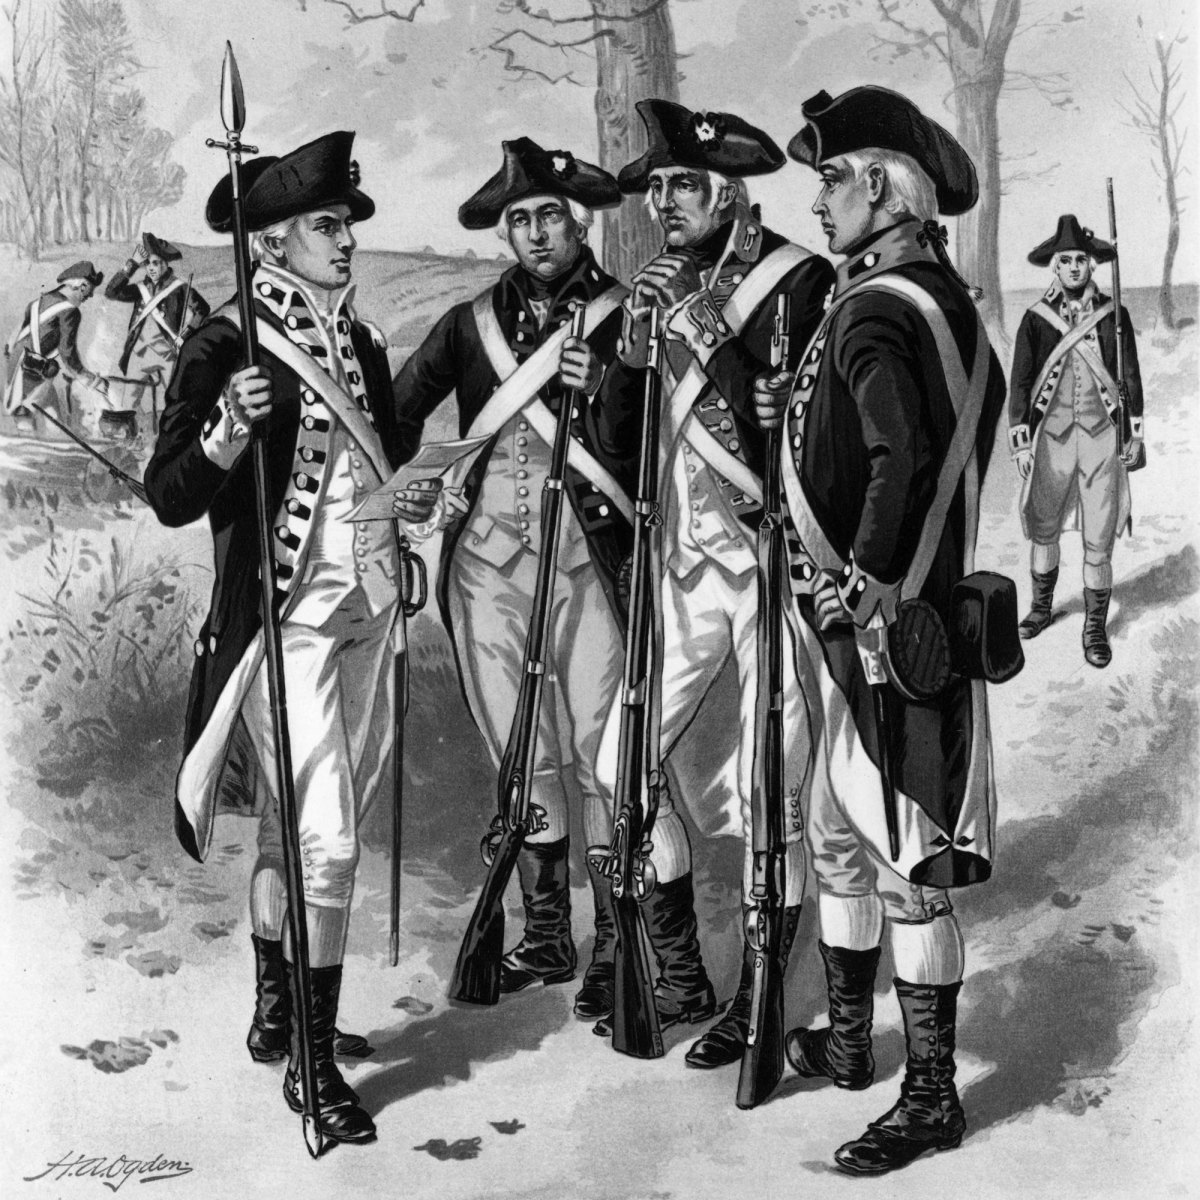 Infantrymen of the Continental Army during the American Revolution.